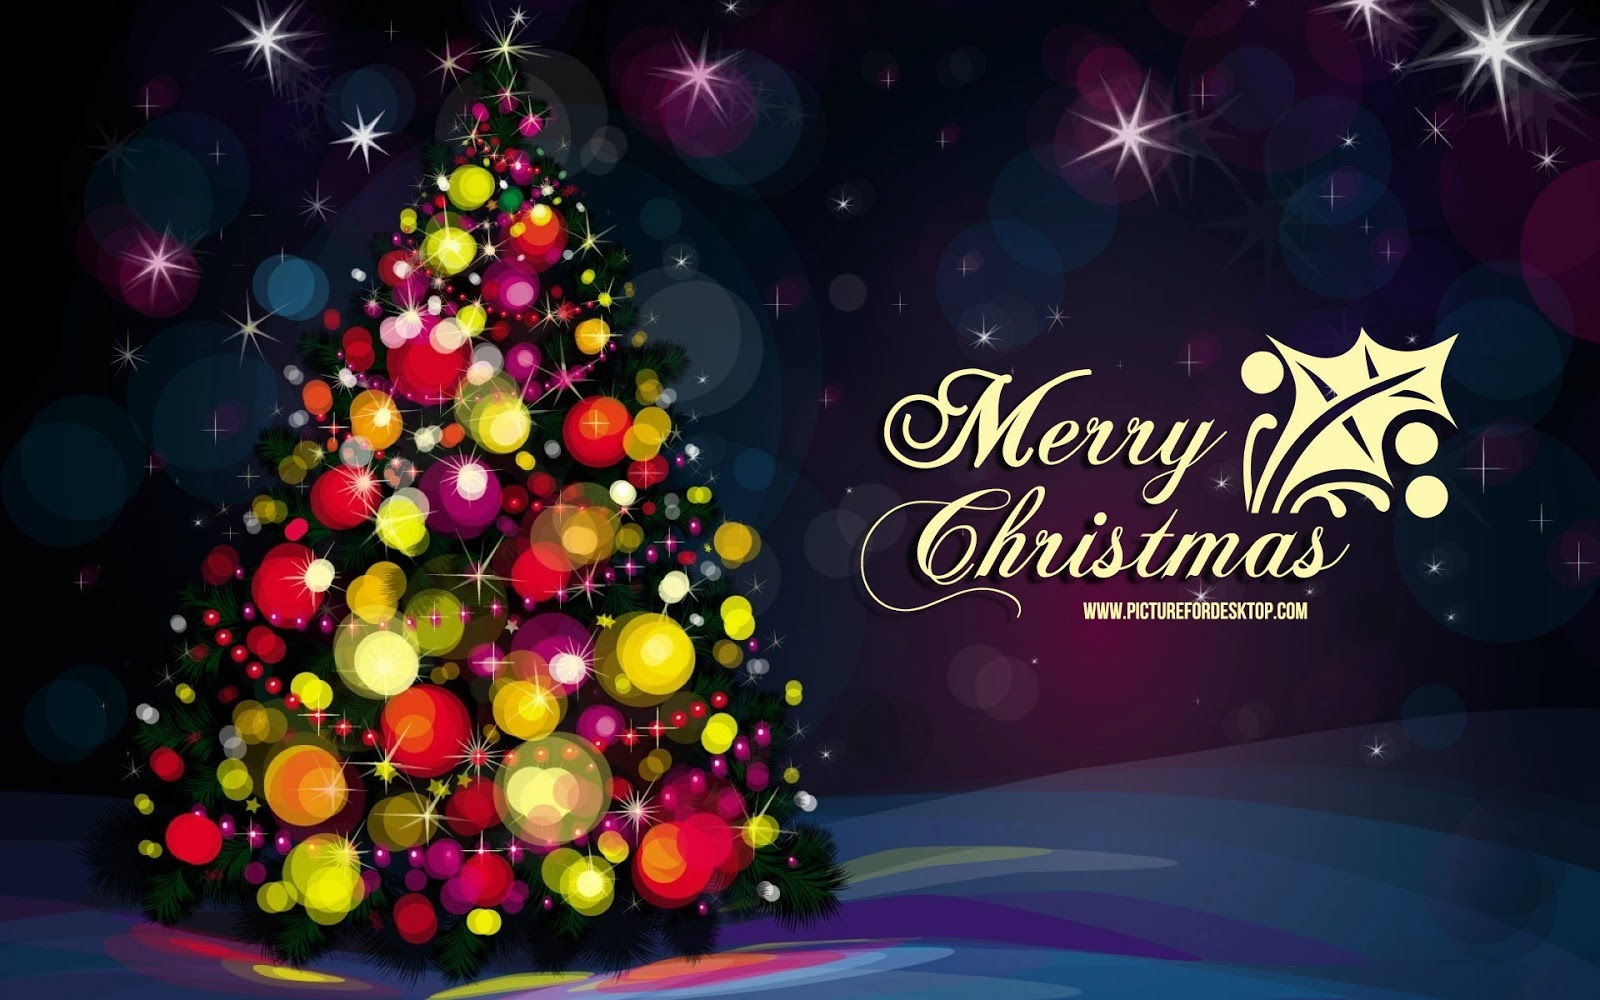 Merry Christmas 2017 Greetings With Wishes Quotes | Merry Christmas 2017  Cards HD With Wishes Message | Merry Christmas 2017 Greetings For Mother U0026  Father ...